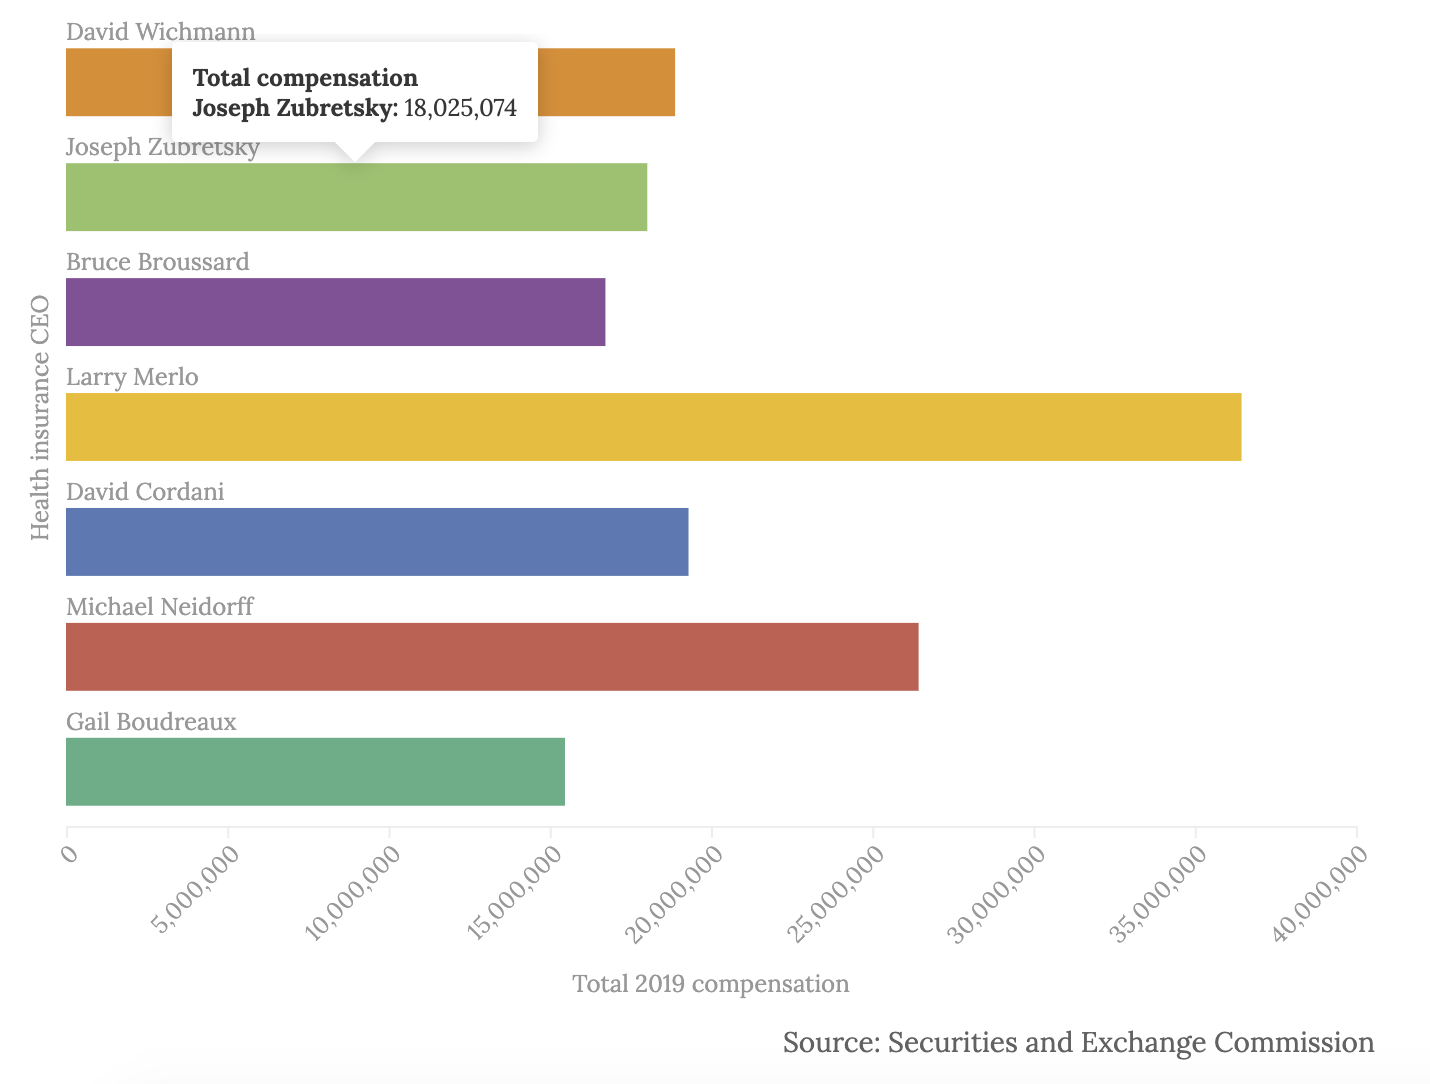 Health insurance CEOs' total 2019 compensation. Source: Securities and Exchange Commission